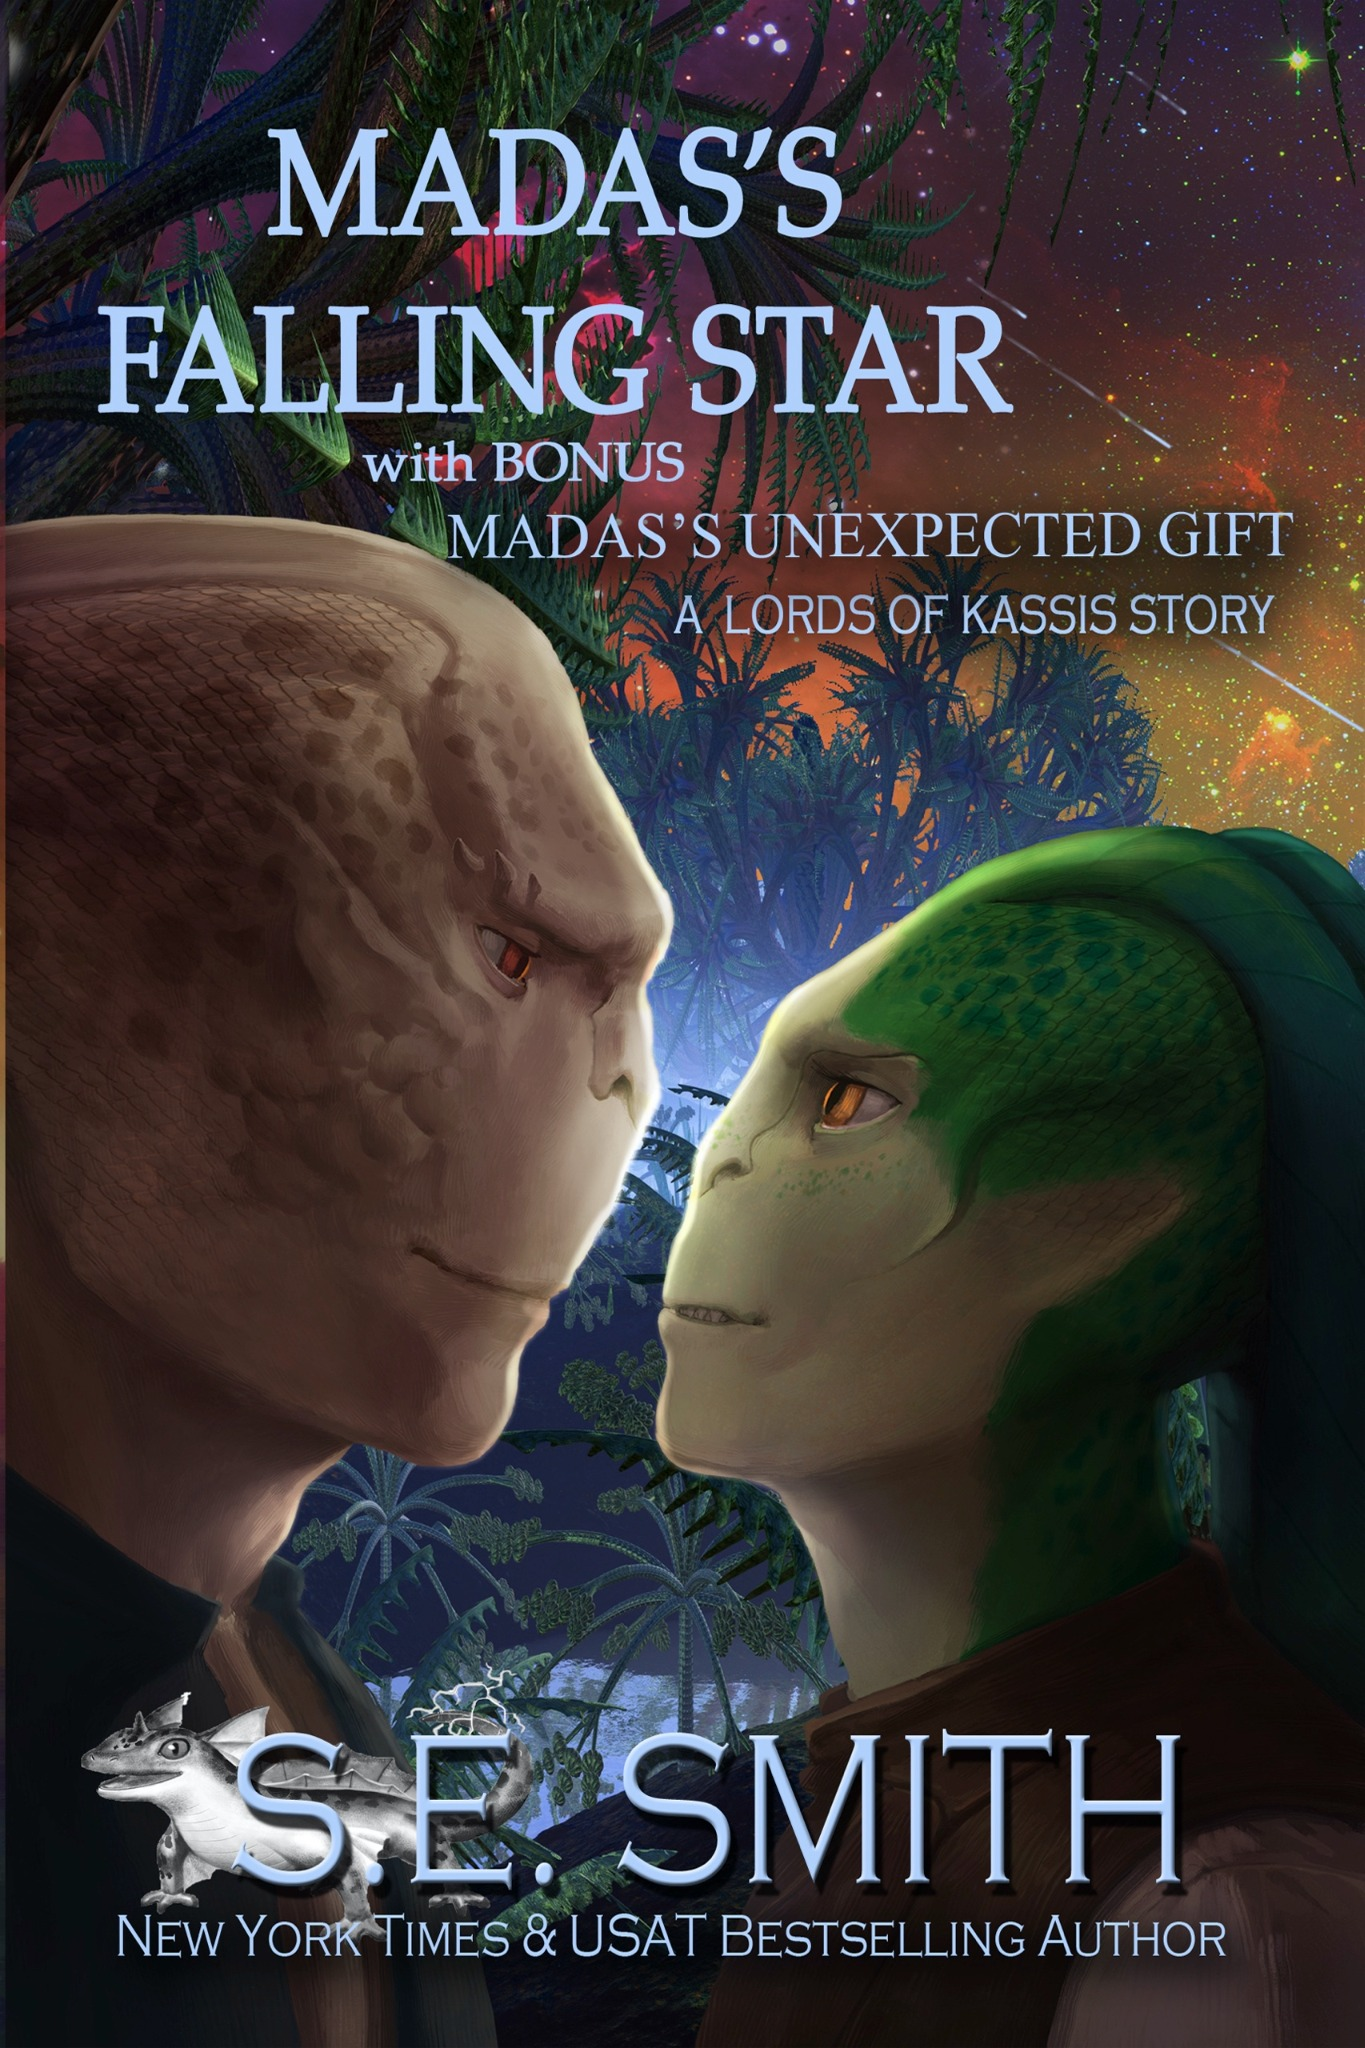 Madas's Falling Star featuring Madas's Unexpected Gift (Paperback)